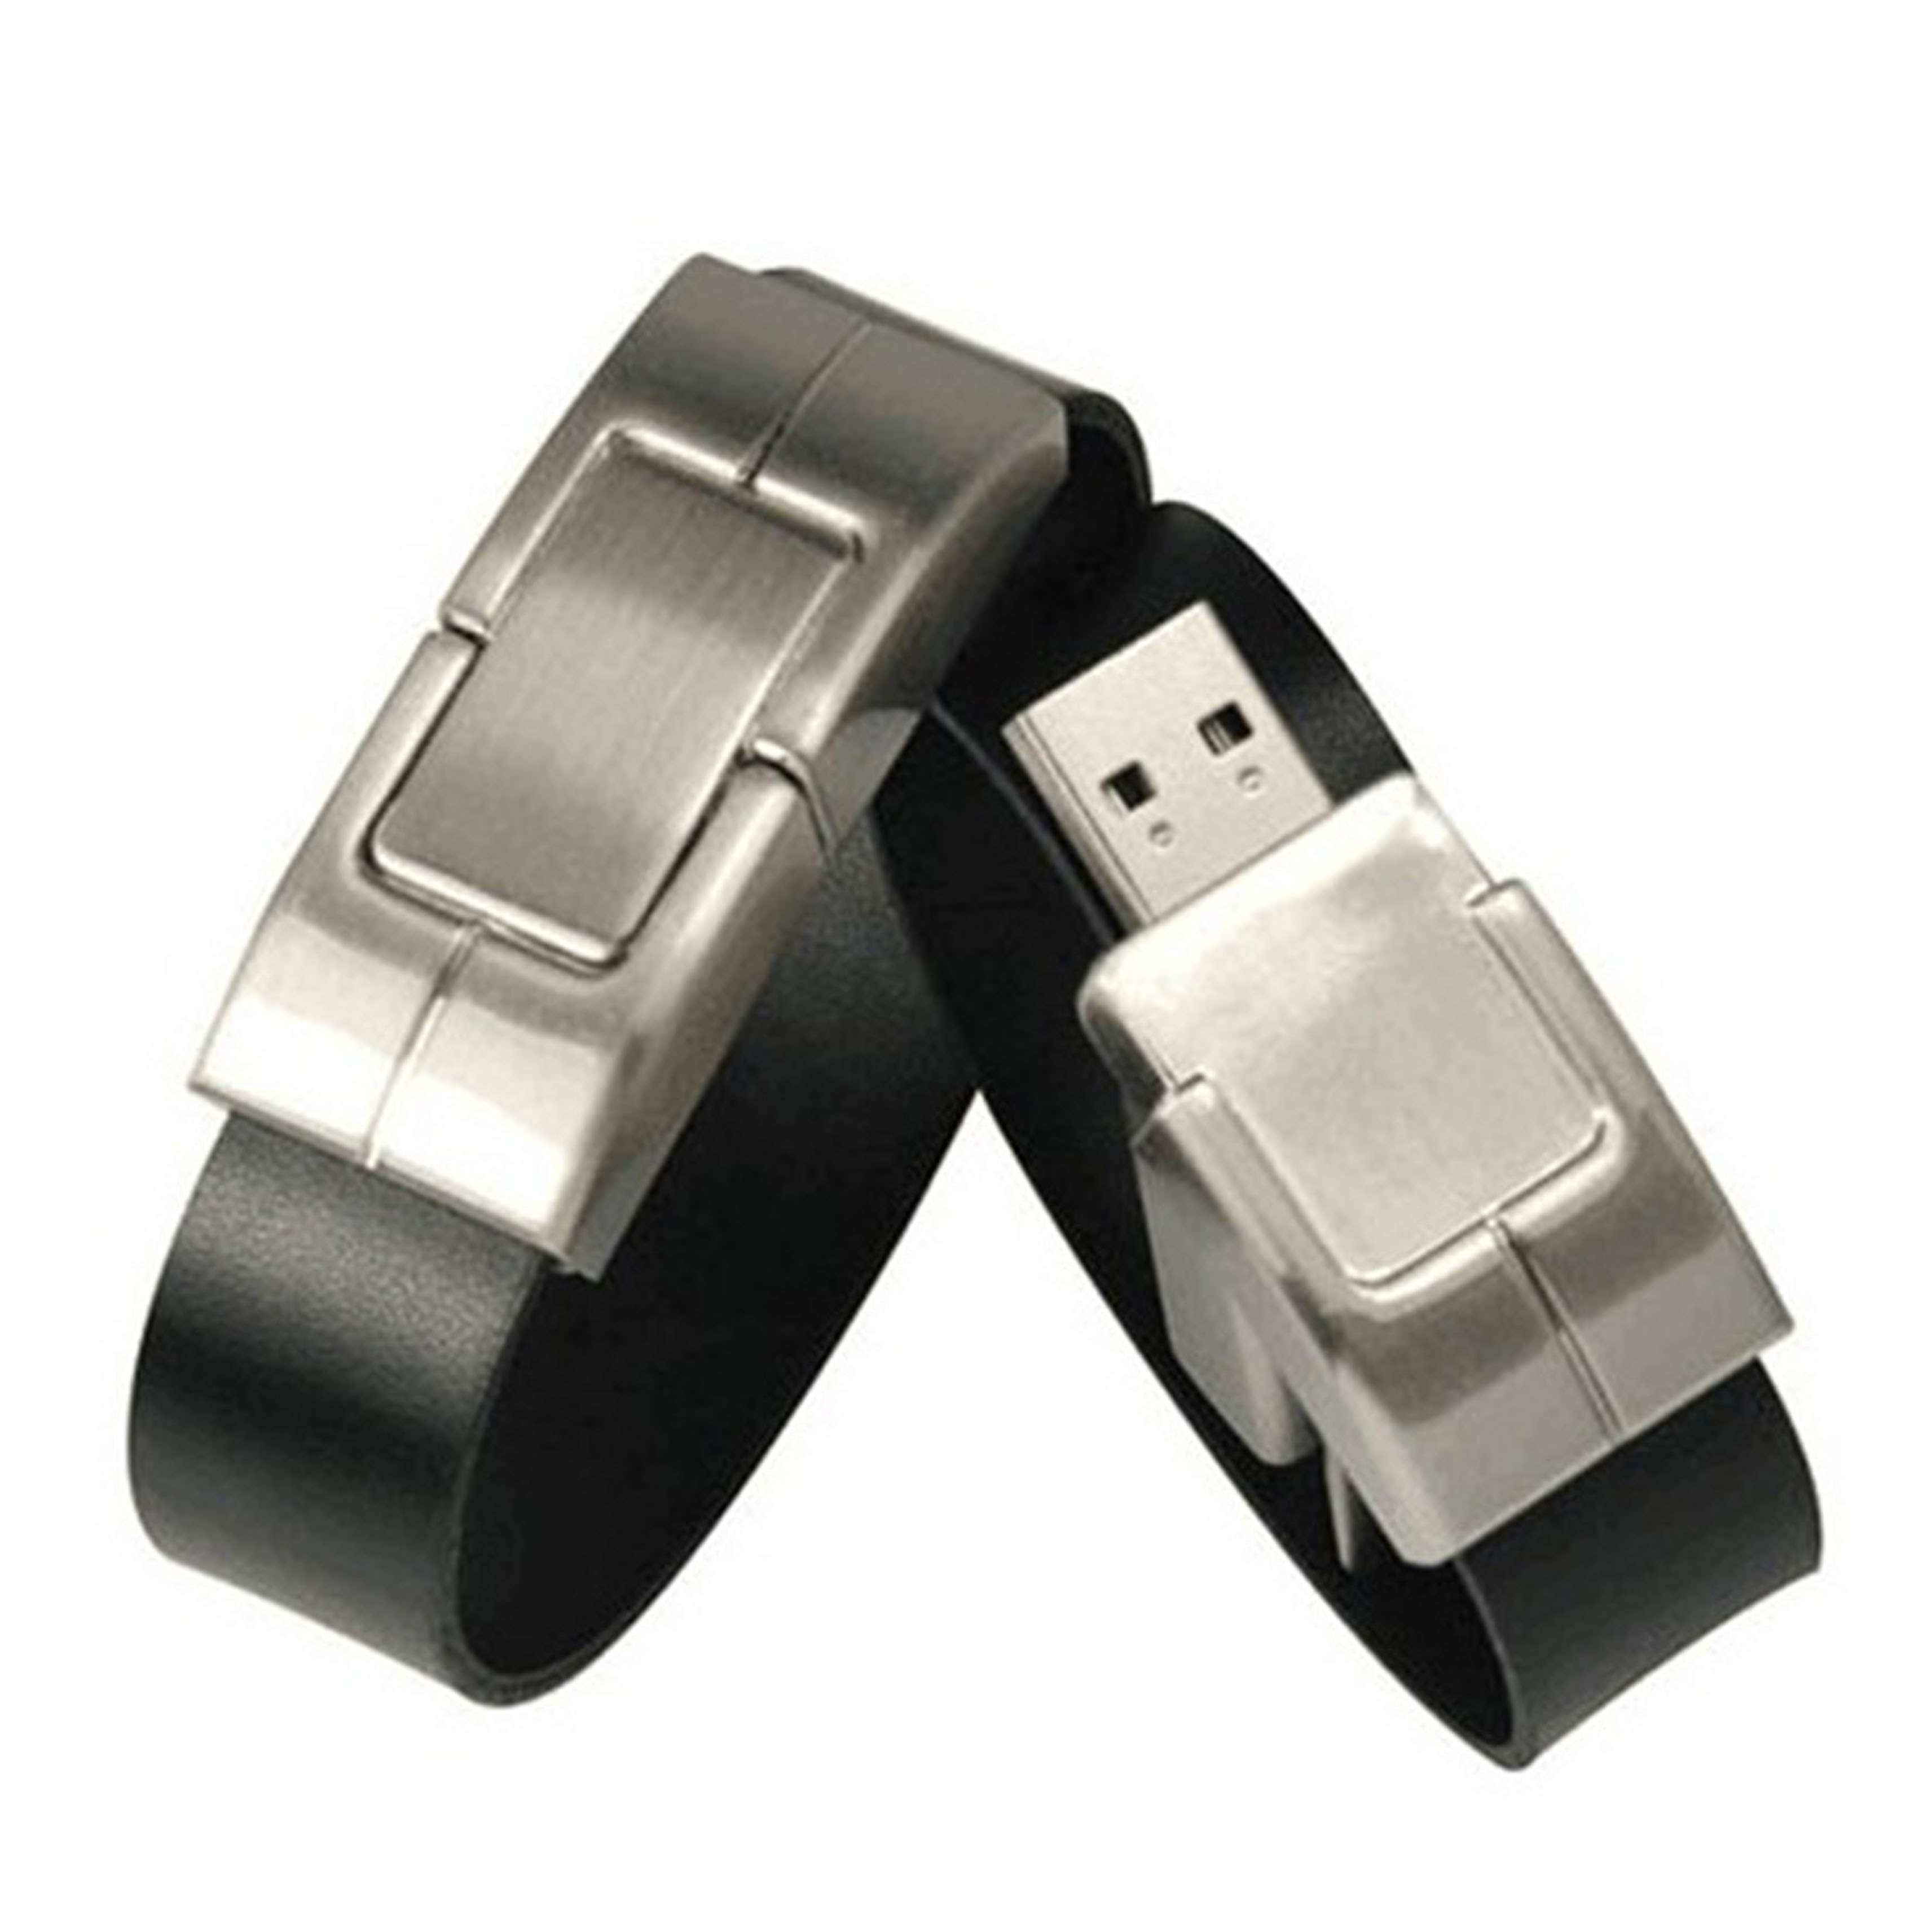 Wristband Leather Black USB flash drive